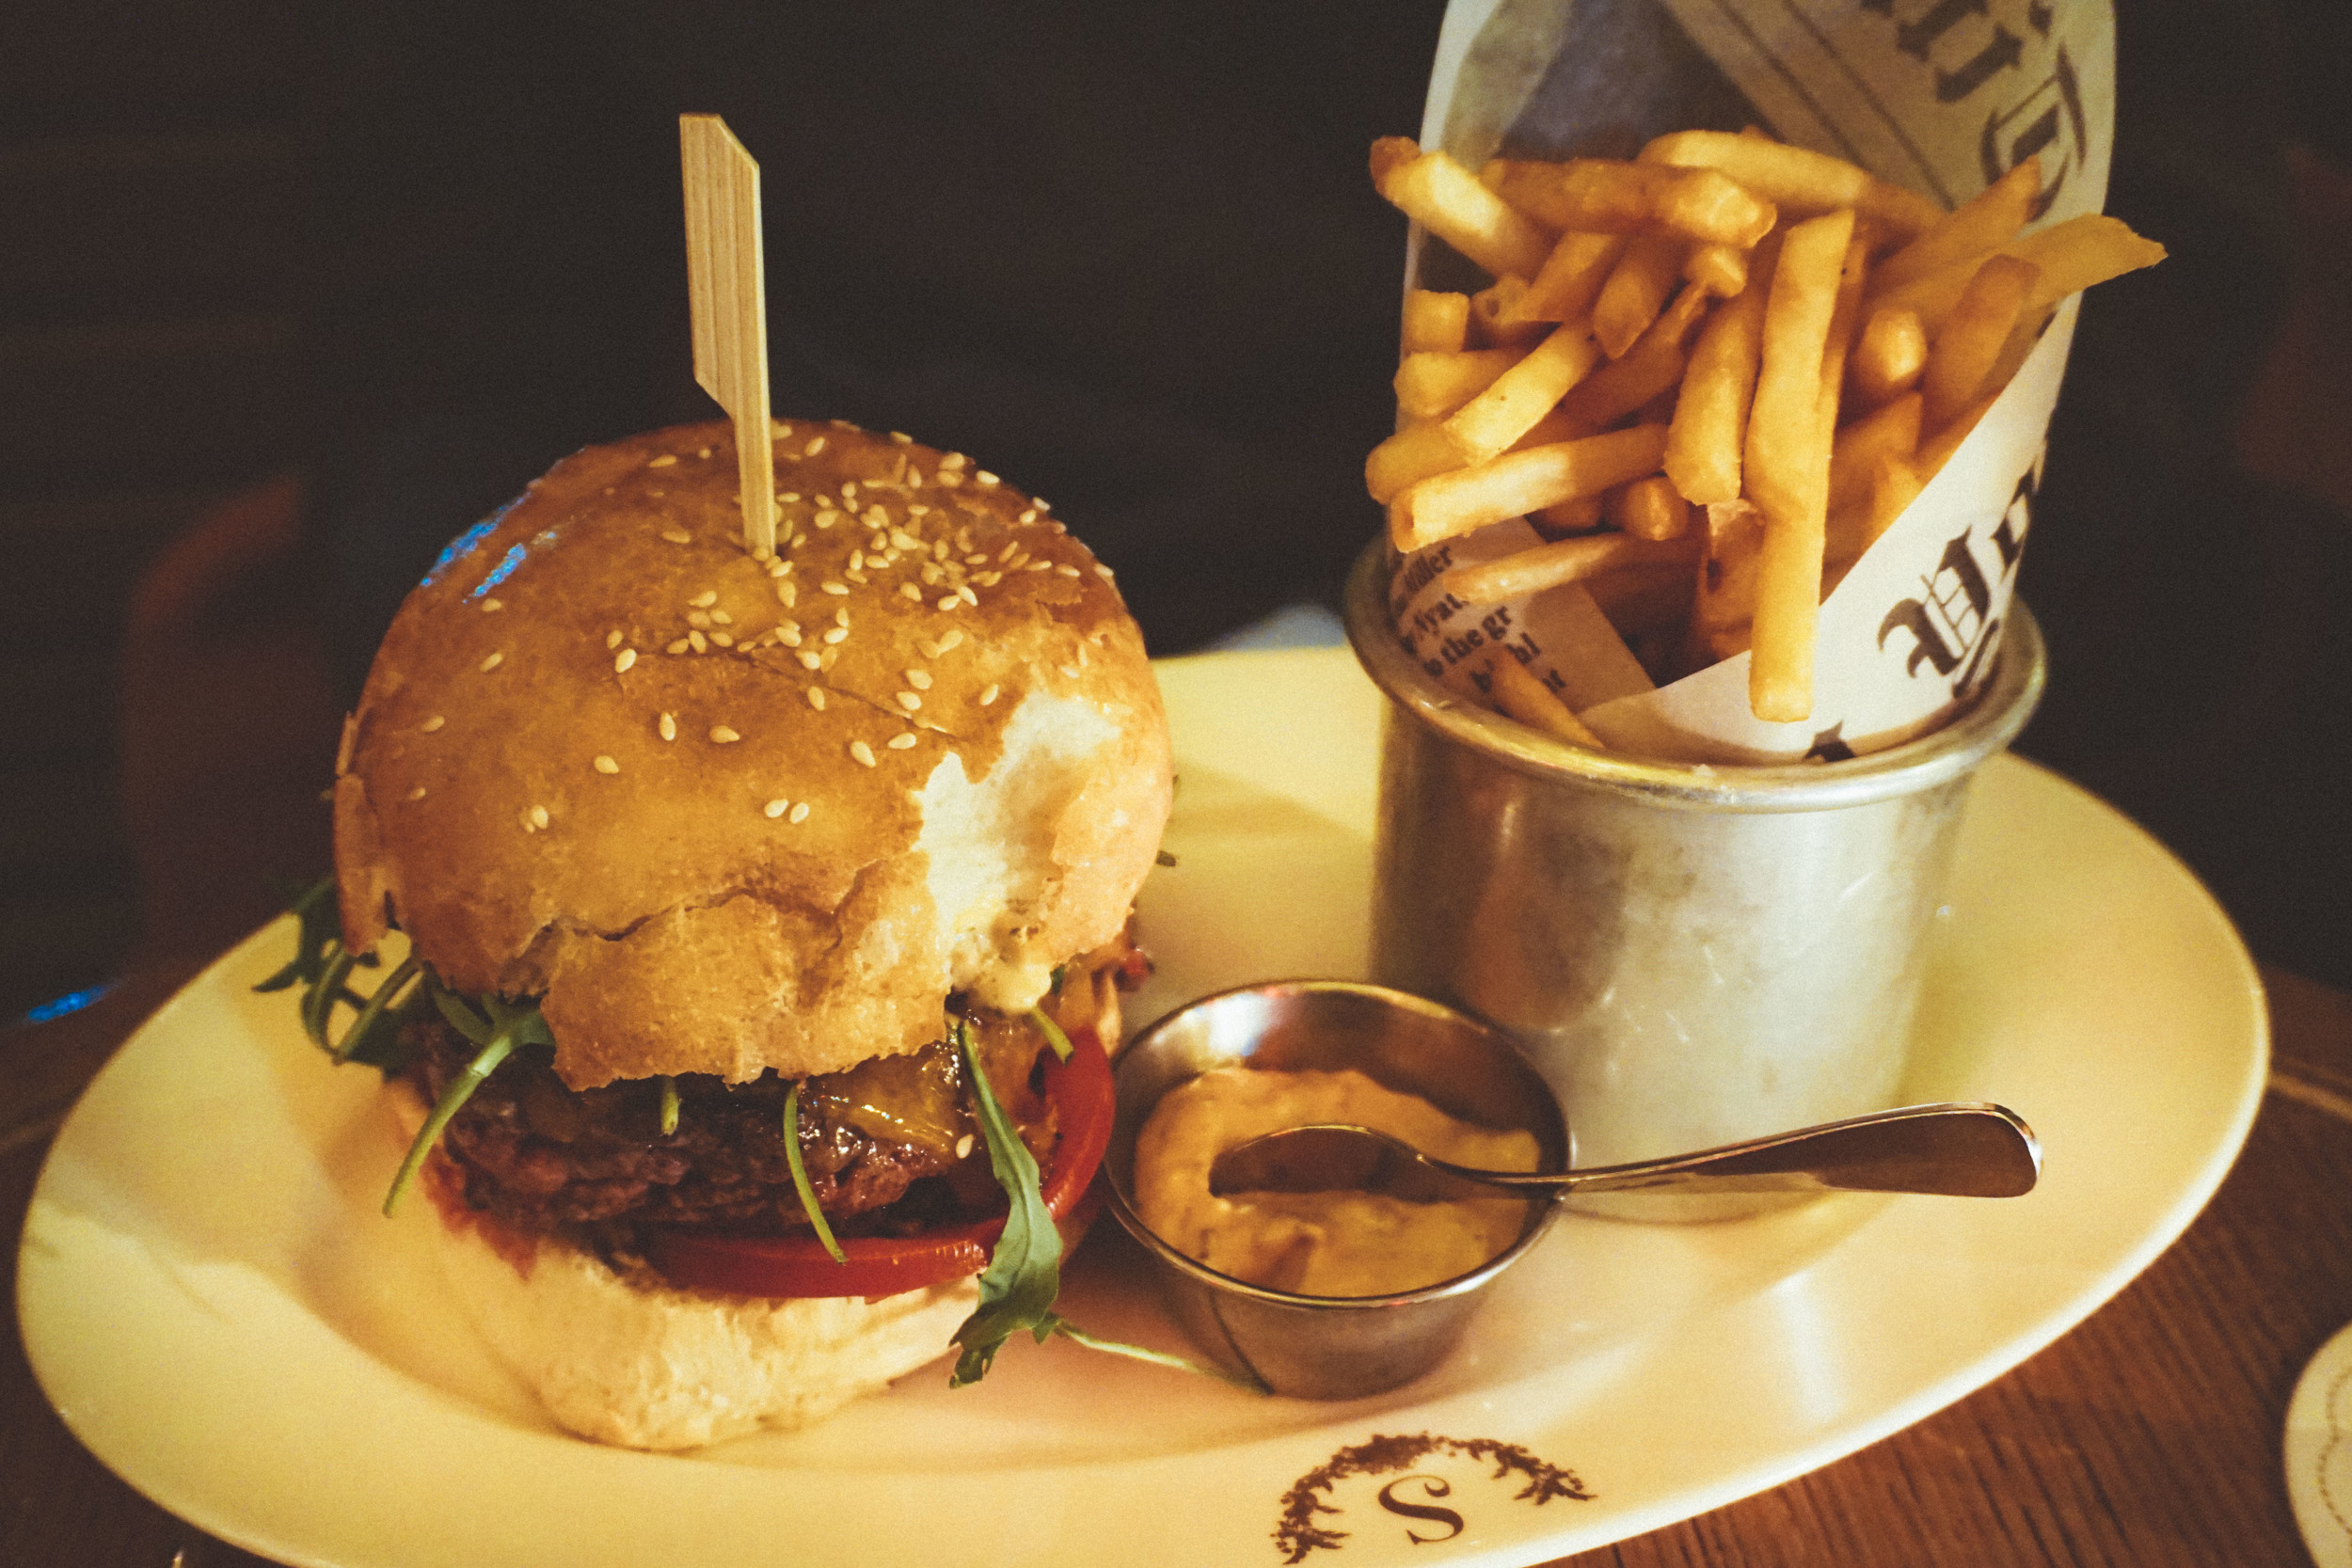 Burger and chips at Le Scossa restaurant in Paris